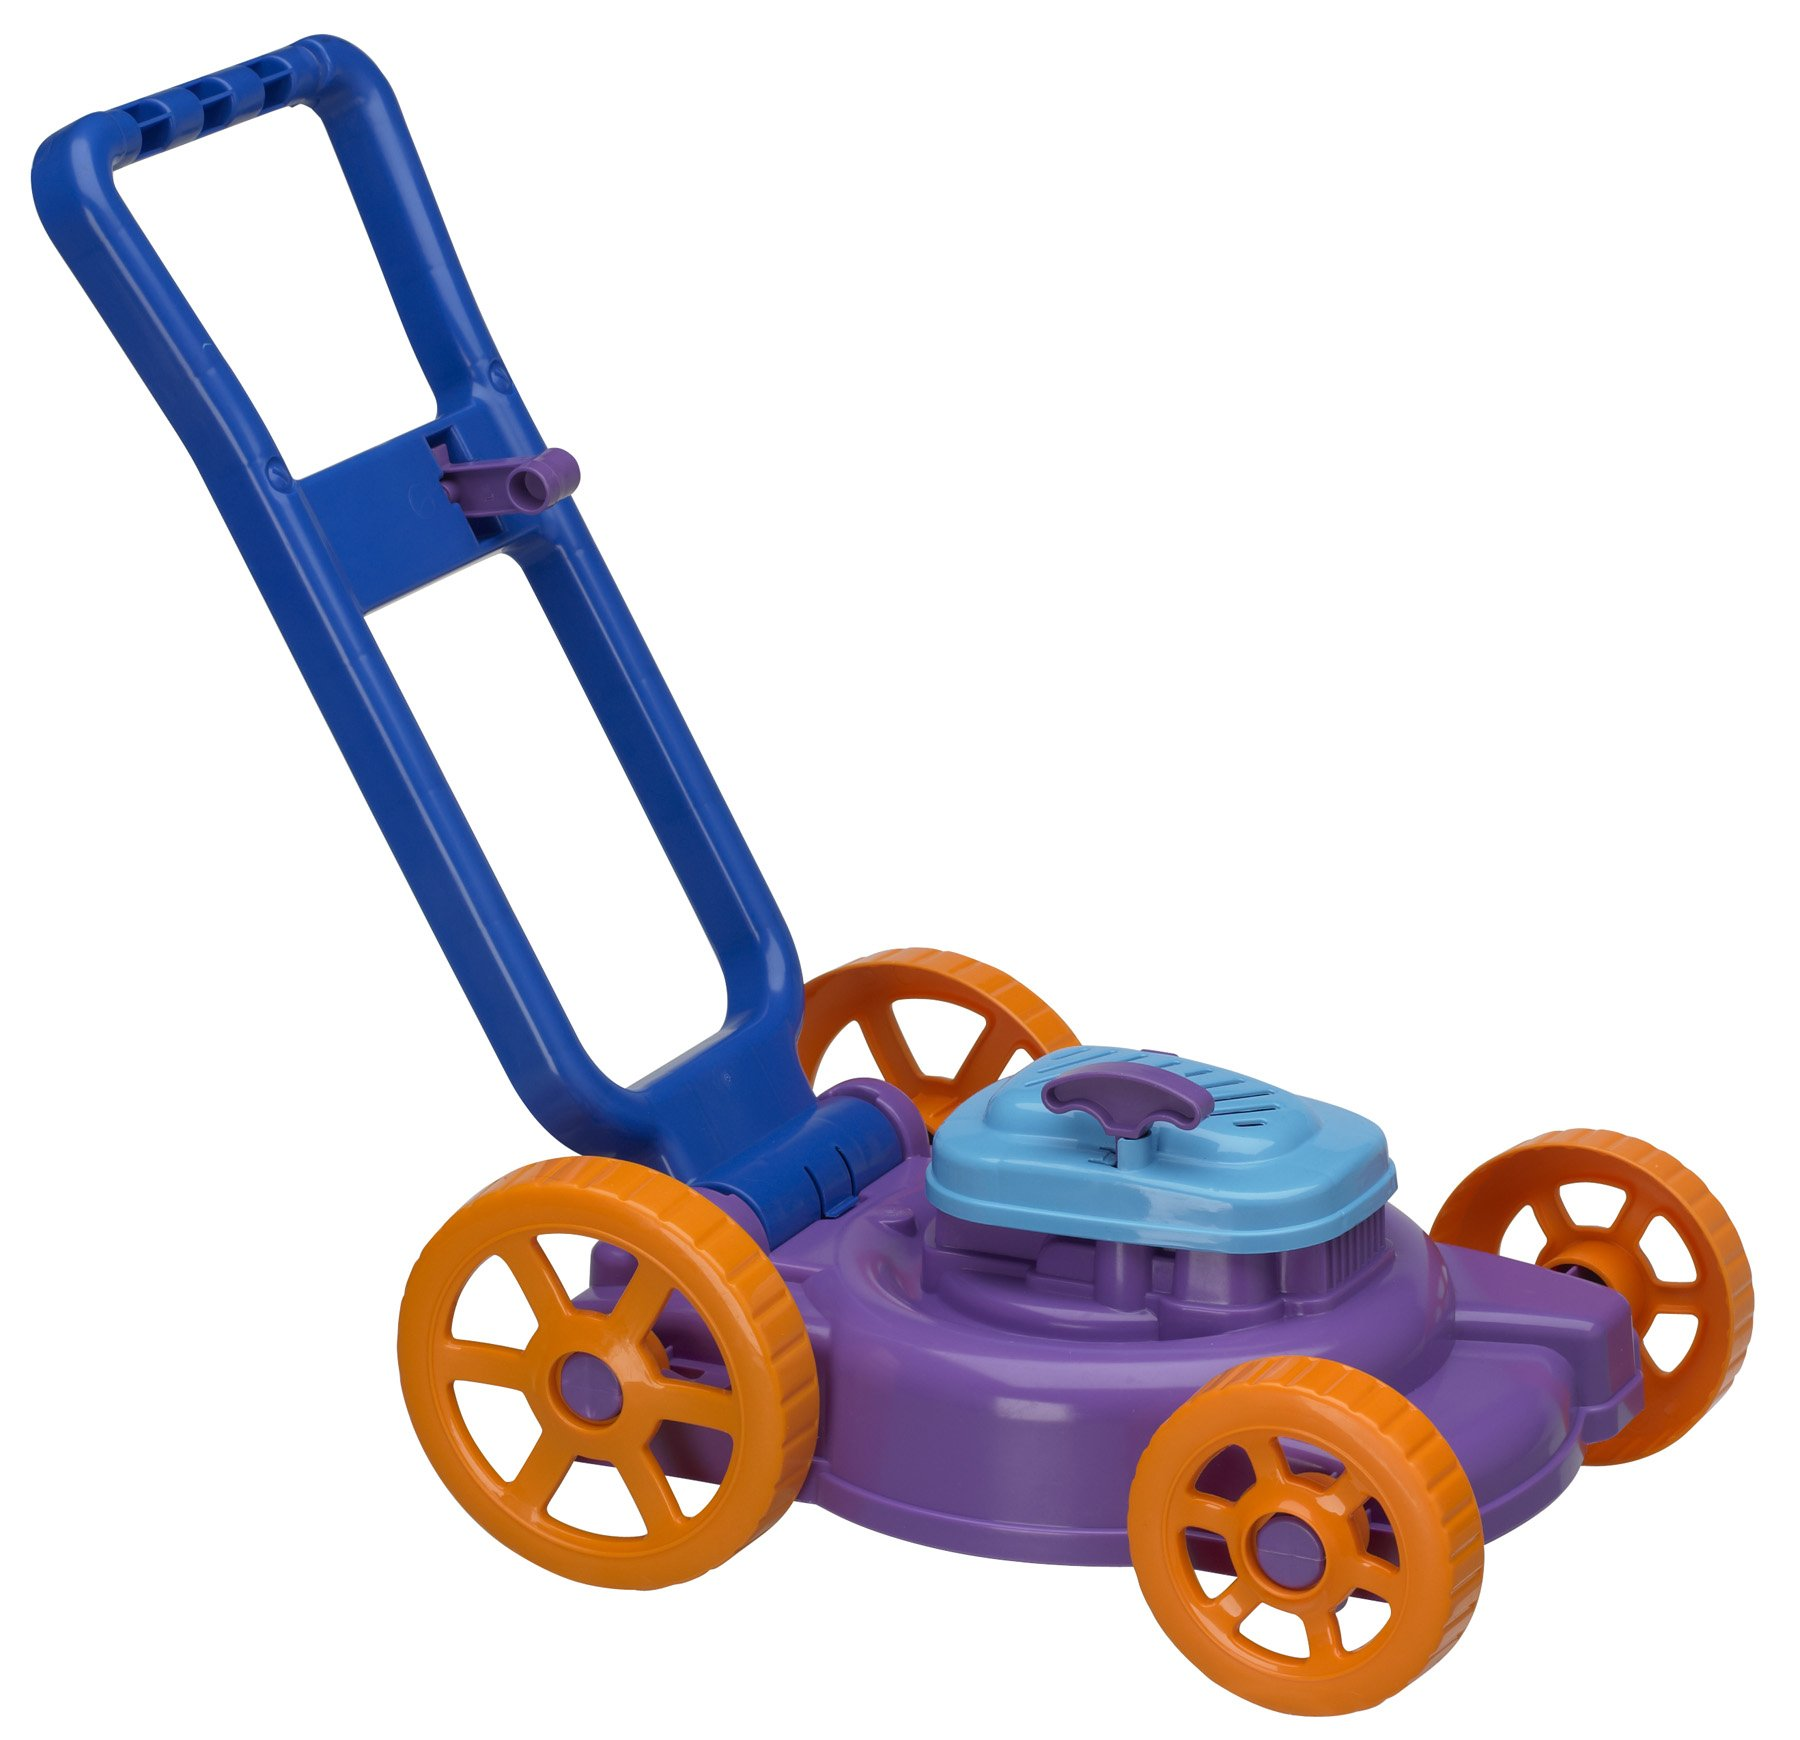 Nesting Lawn Mower (Colors May Vary)